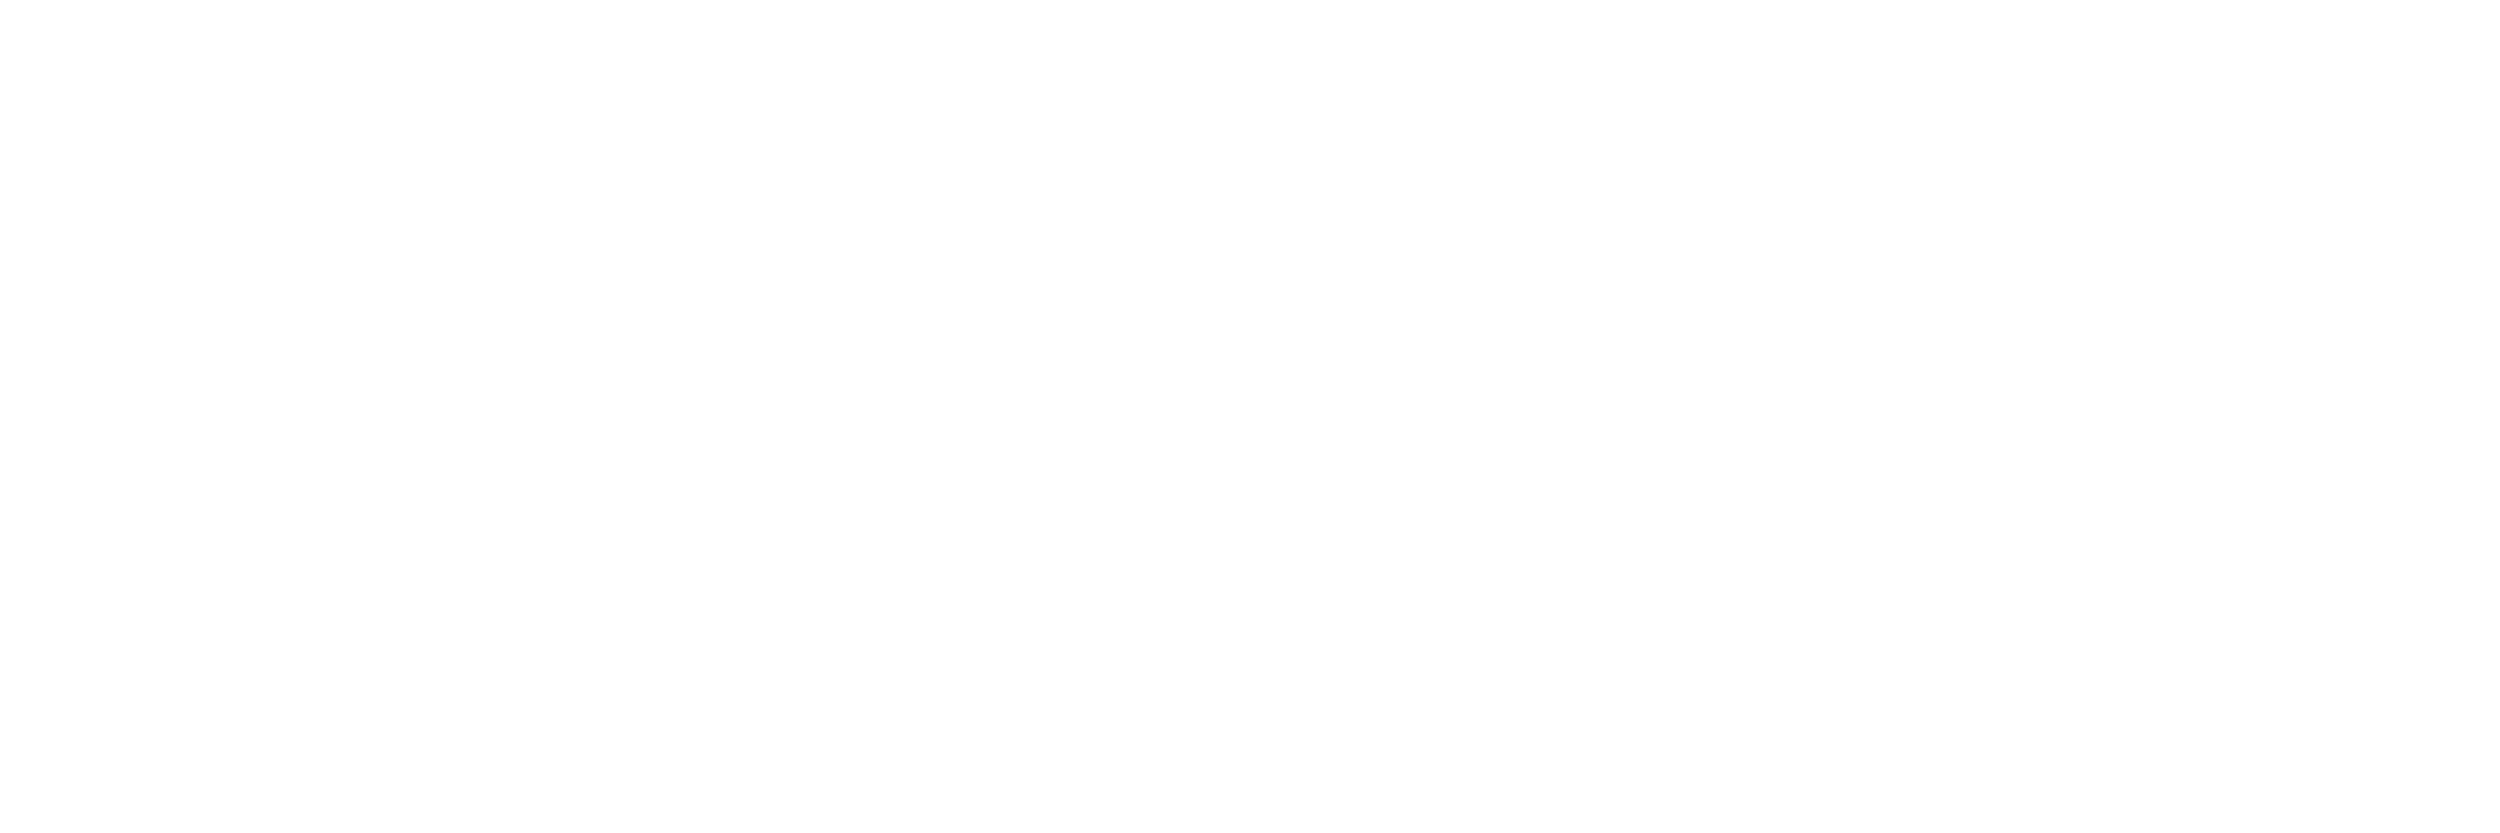 Win and Woo Text Logo White.png